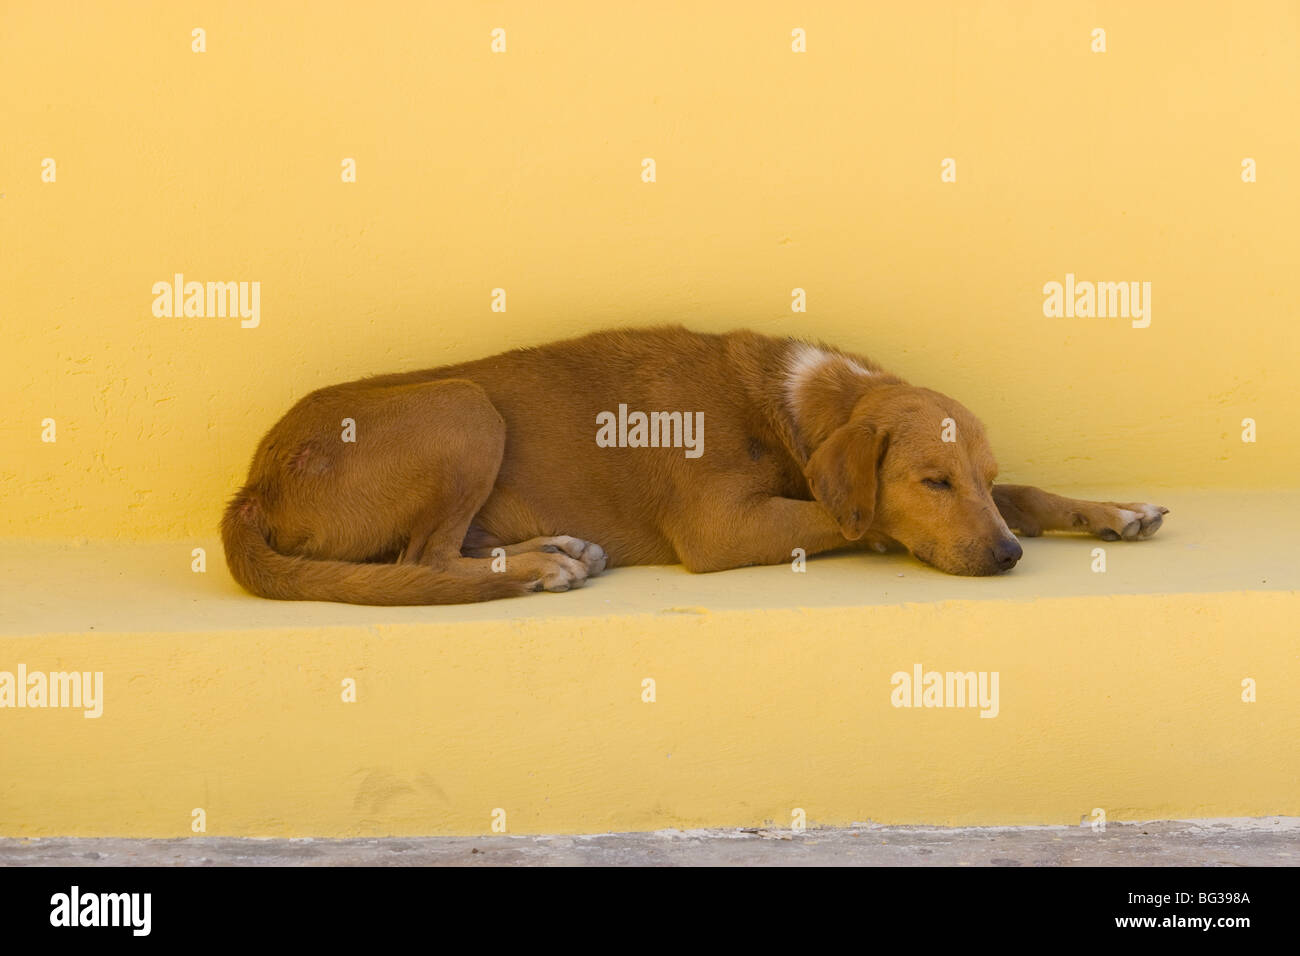 A dog sleeping on a yellow bench in Mexico - Stock Image